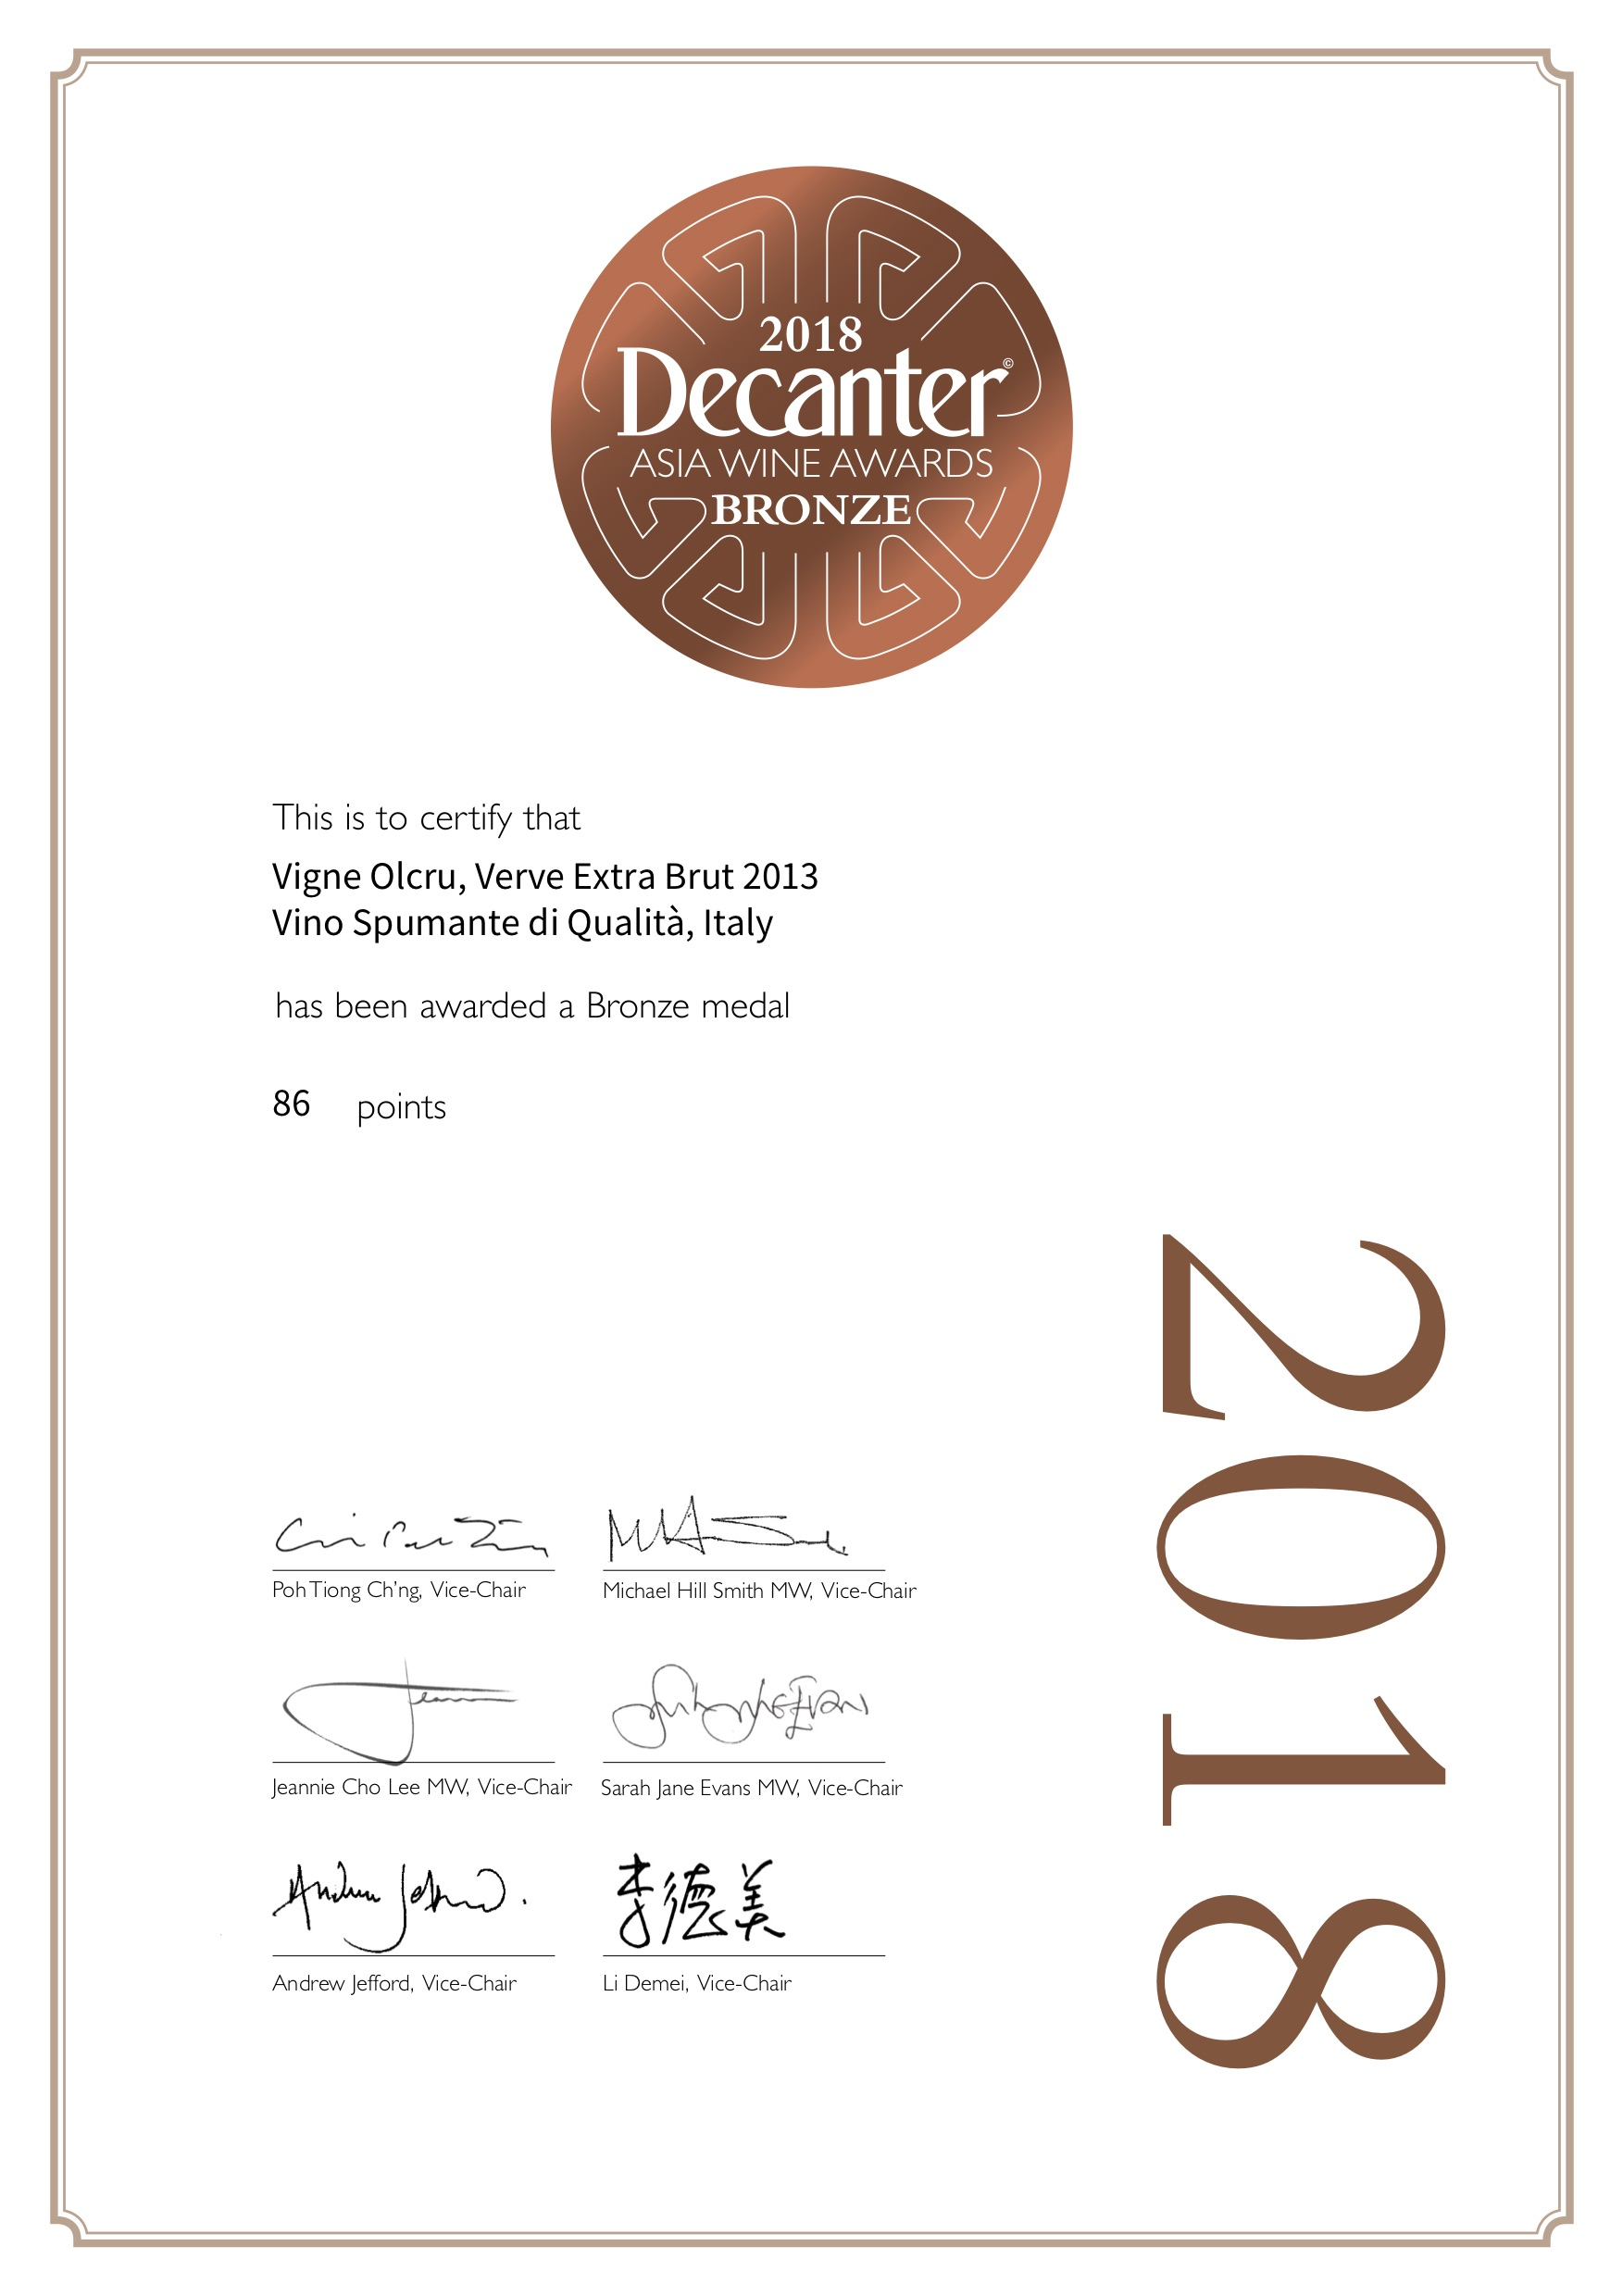 Decanter asia 2018 – Verve 2013